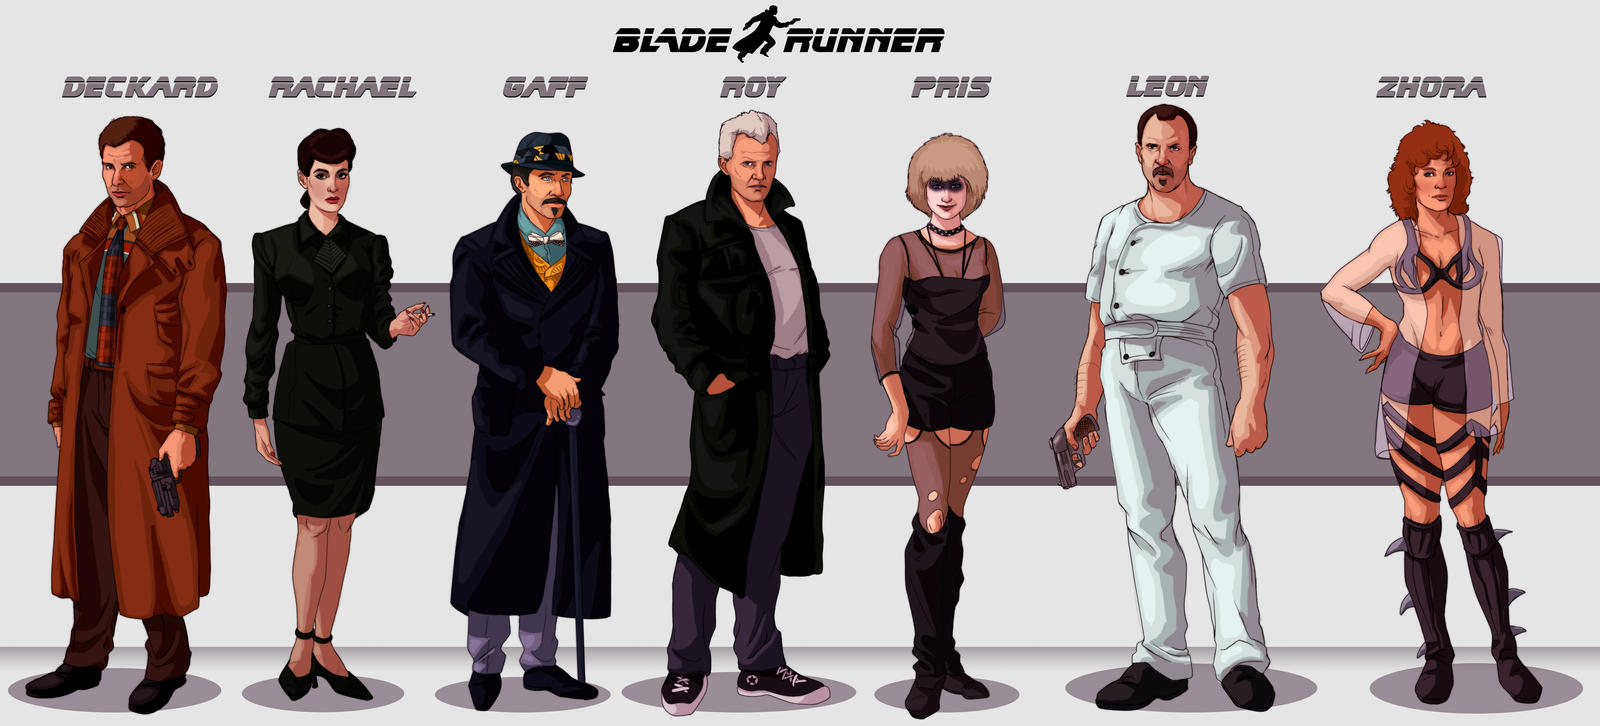 blade runner character notes This works as a great comic book adaption of the movie for younger readers for adults, it's a little like reading the cliffs notes for a book you already understand, but it's still a fun summary for fans of blade runner.